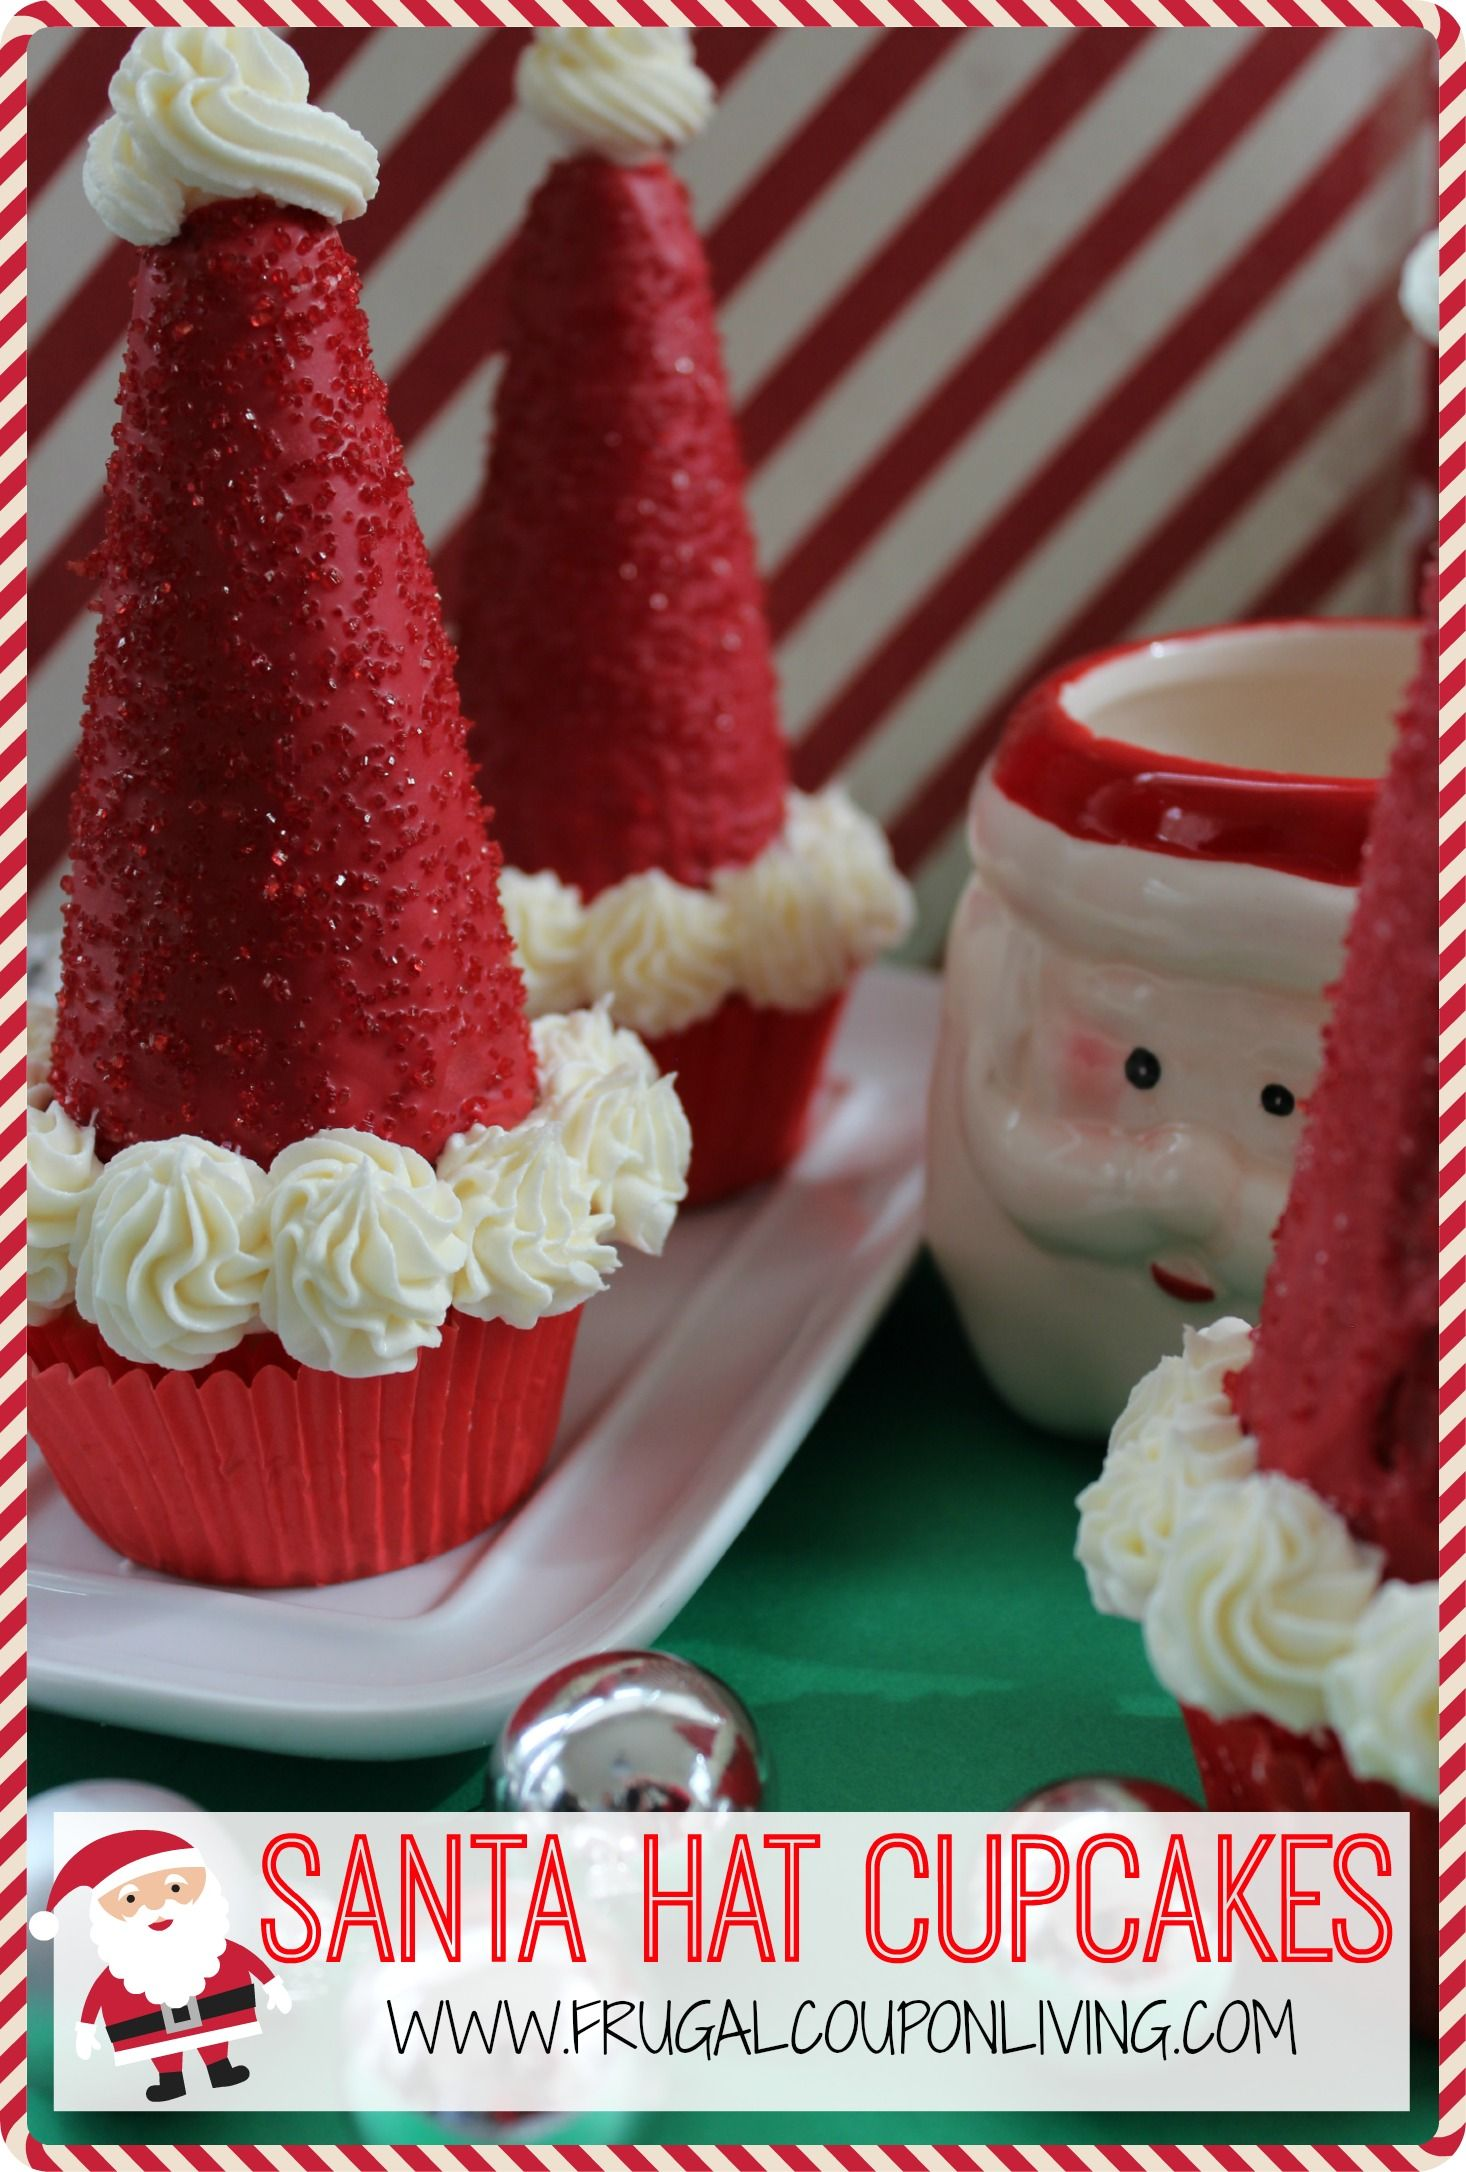 Santa hat cupcakes recipe with an ice cream cone holiday food frugal coupon livings santa hat cupcakes recipe with an ice cream cone do it yourself solutioingenieria Gallery